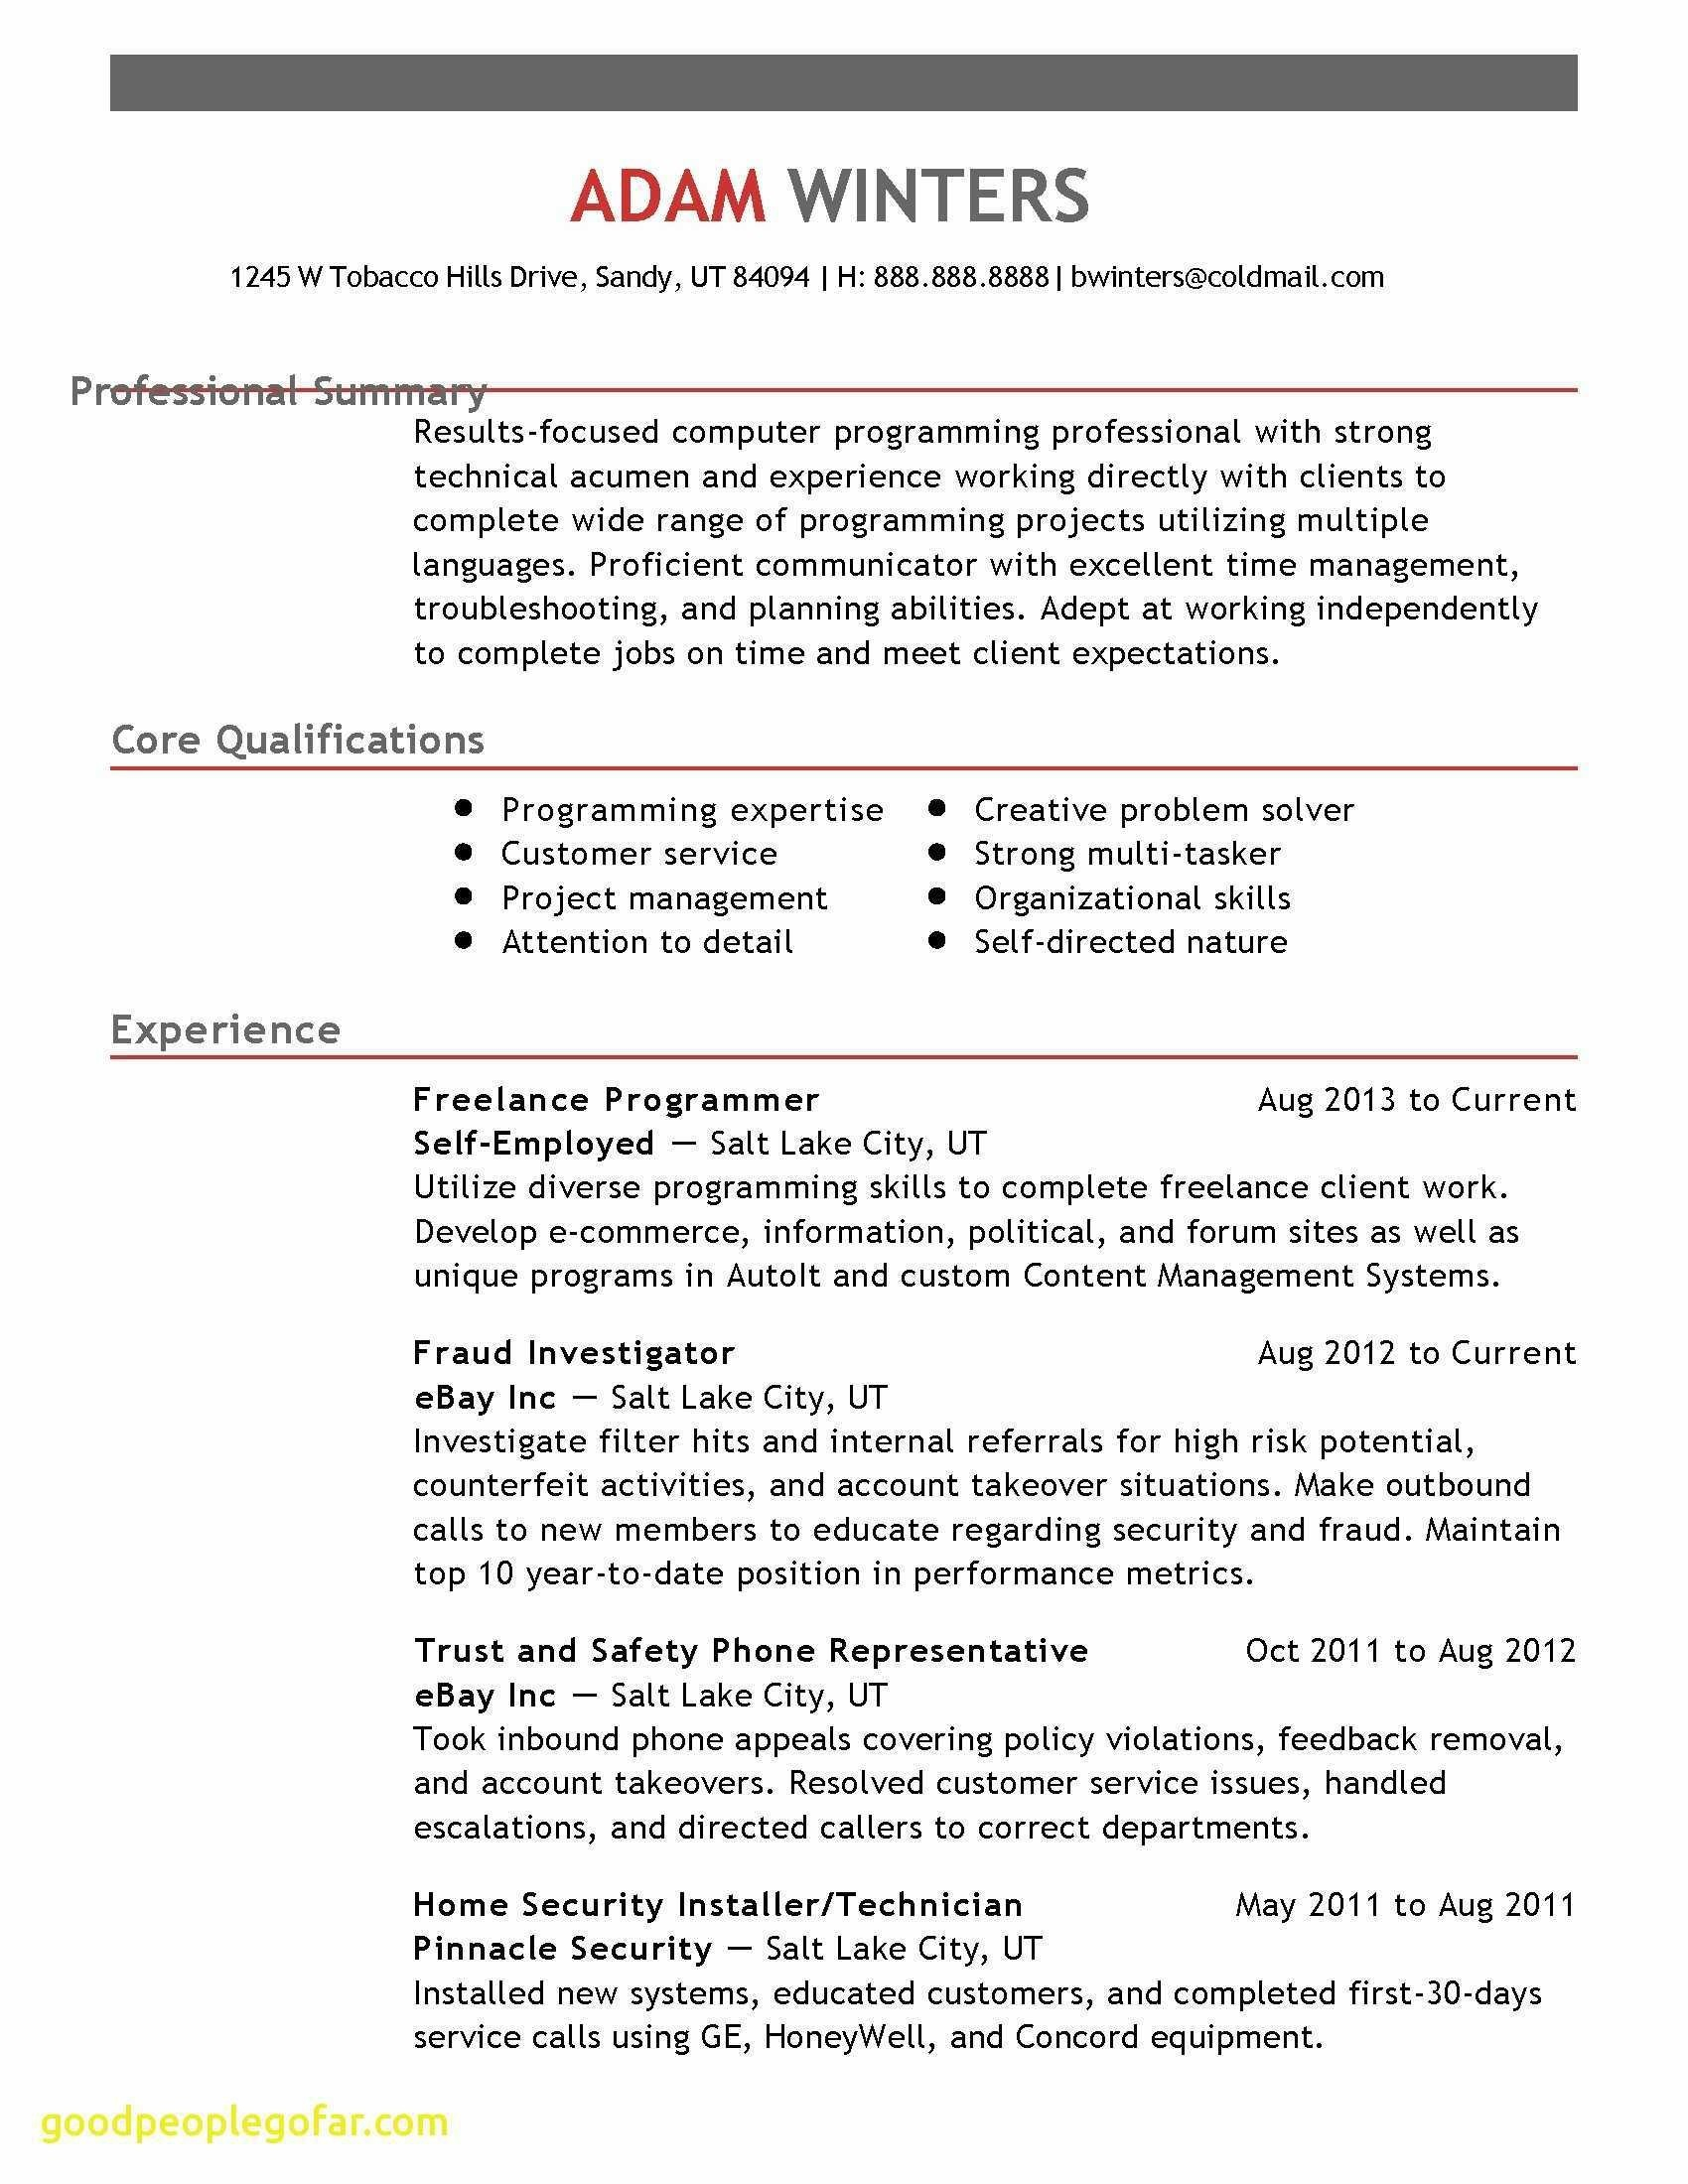 Resume Sites for Recruiters - Resume Website Examples New Resume Website Template Free